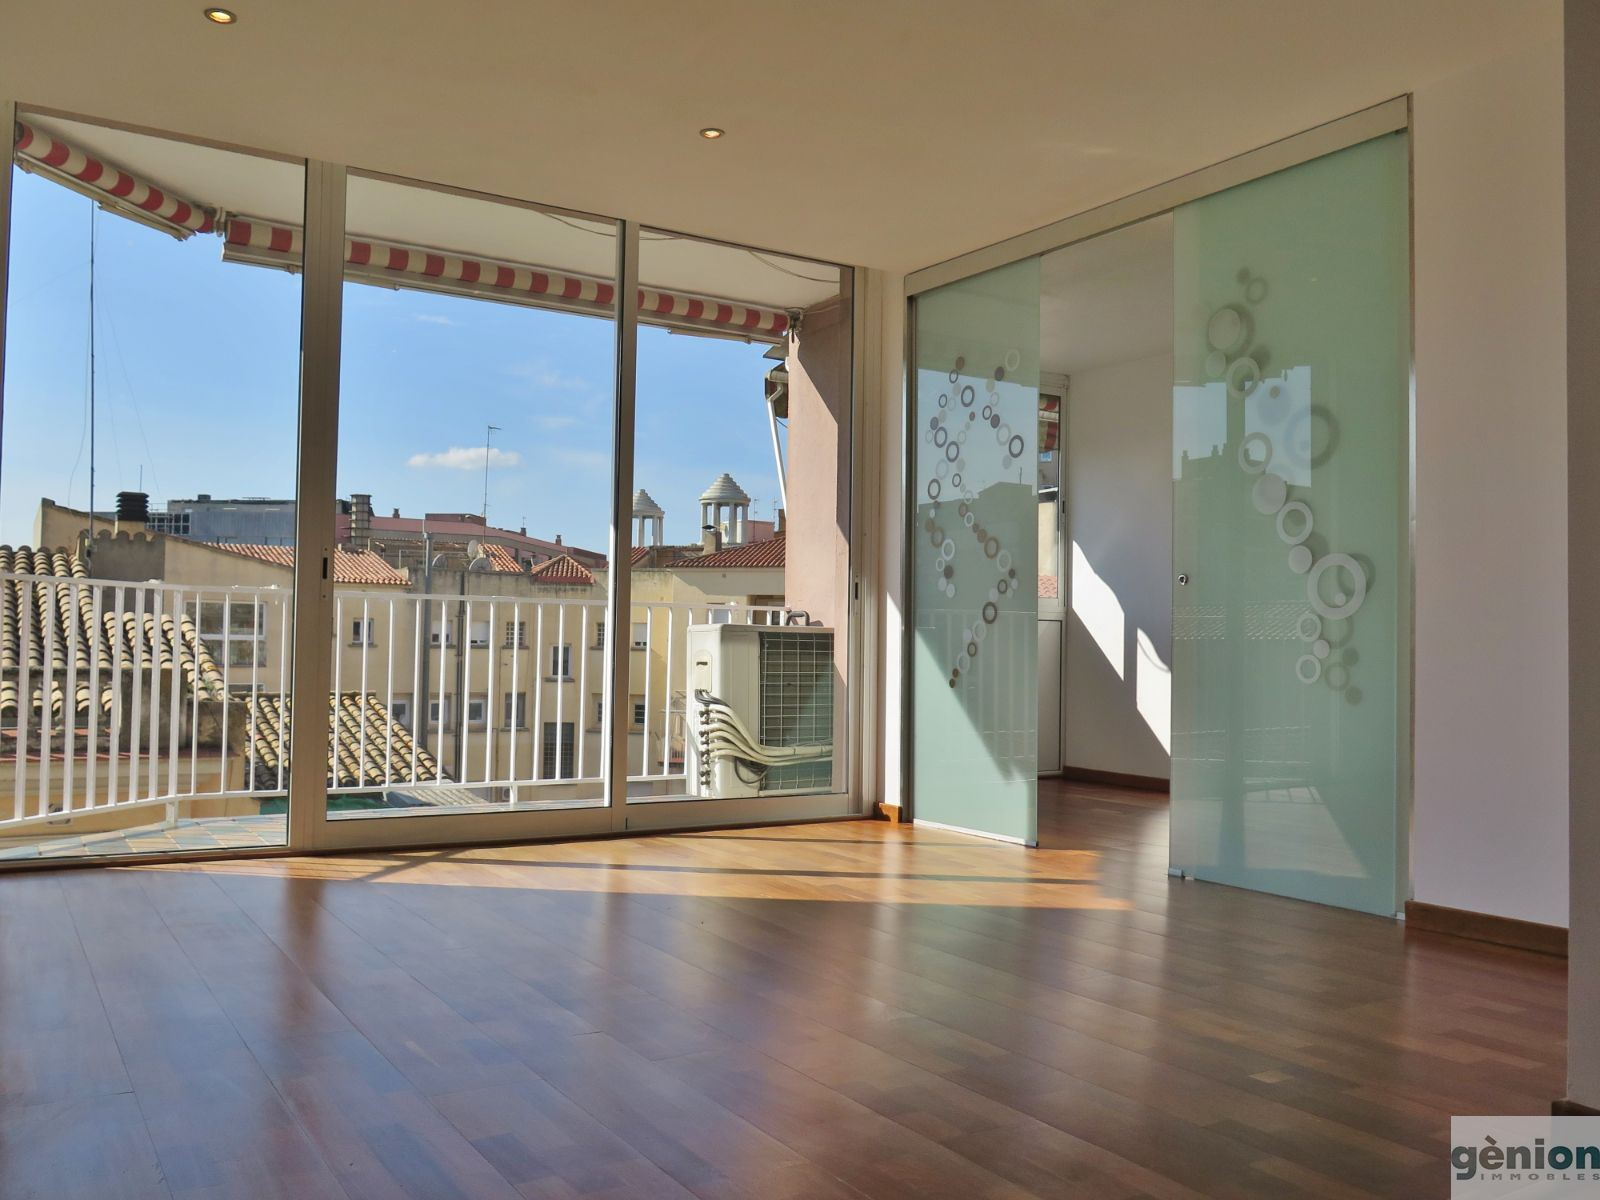 FIFTH FLOOR IN THE CENTRE OF GIRONA. LIVING AREA OF 53.83 M² AND 5.08 M² TERRACE